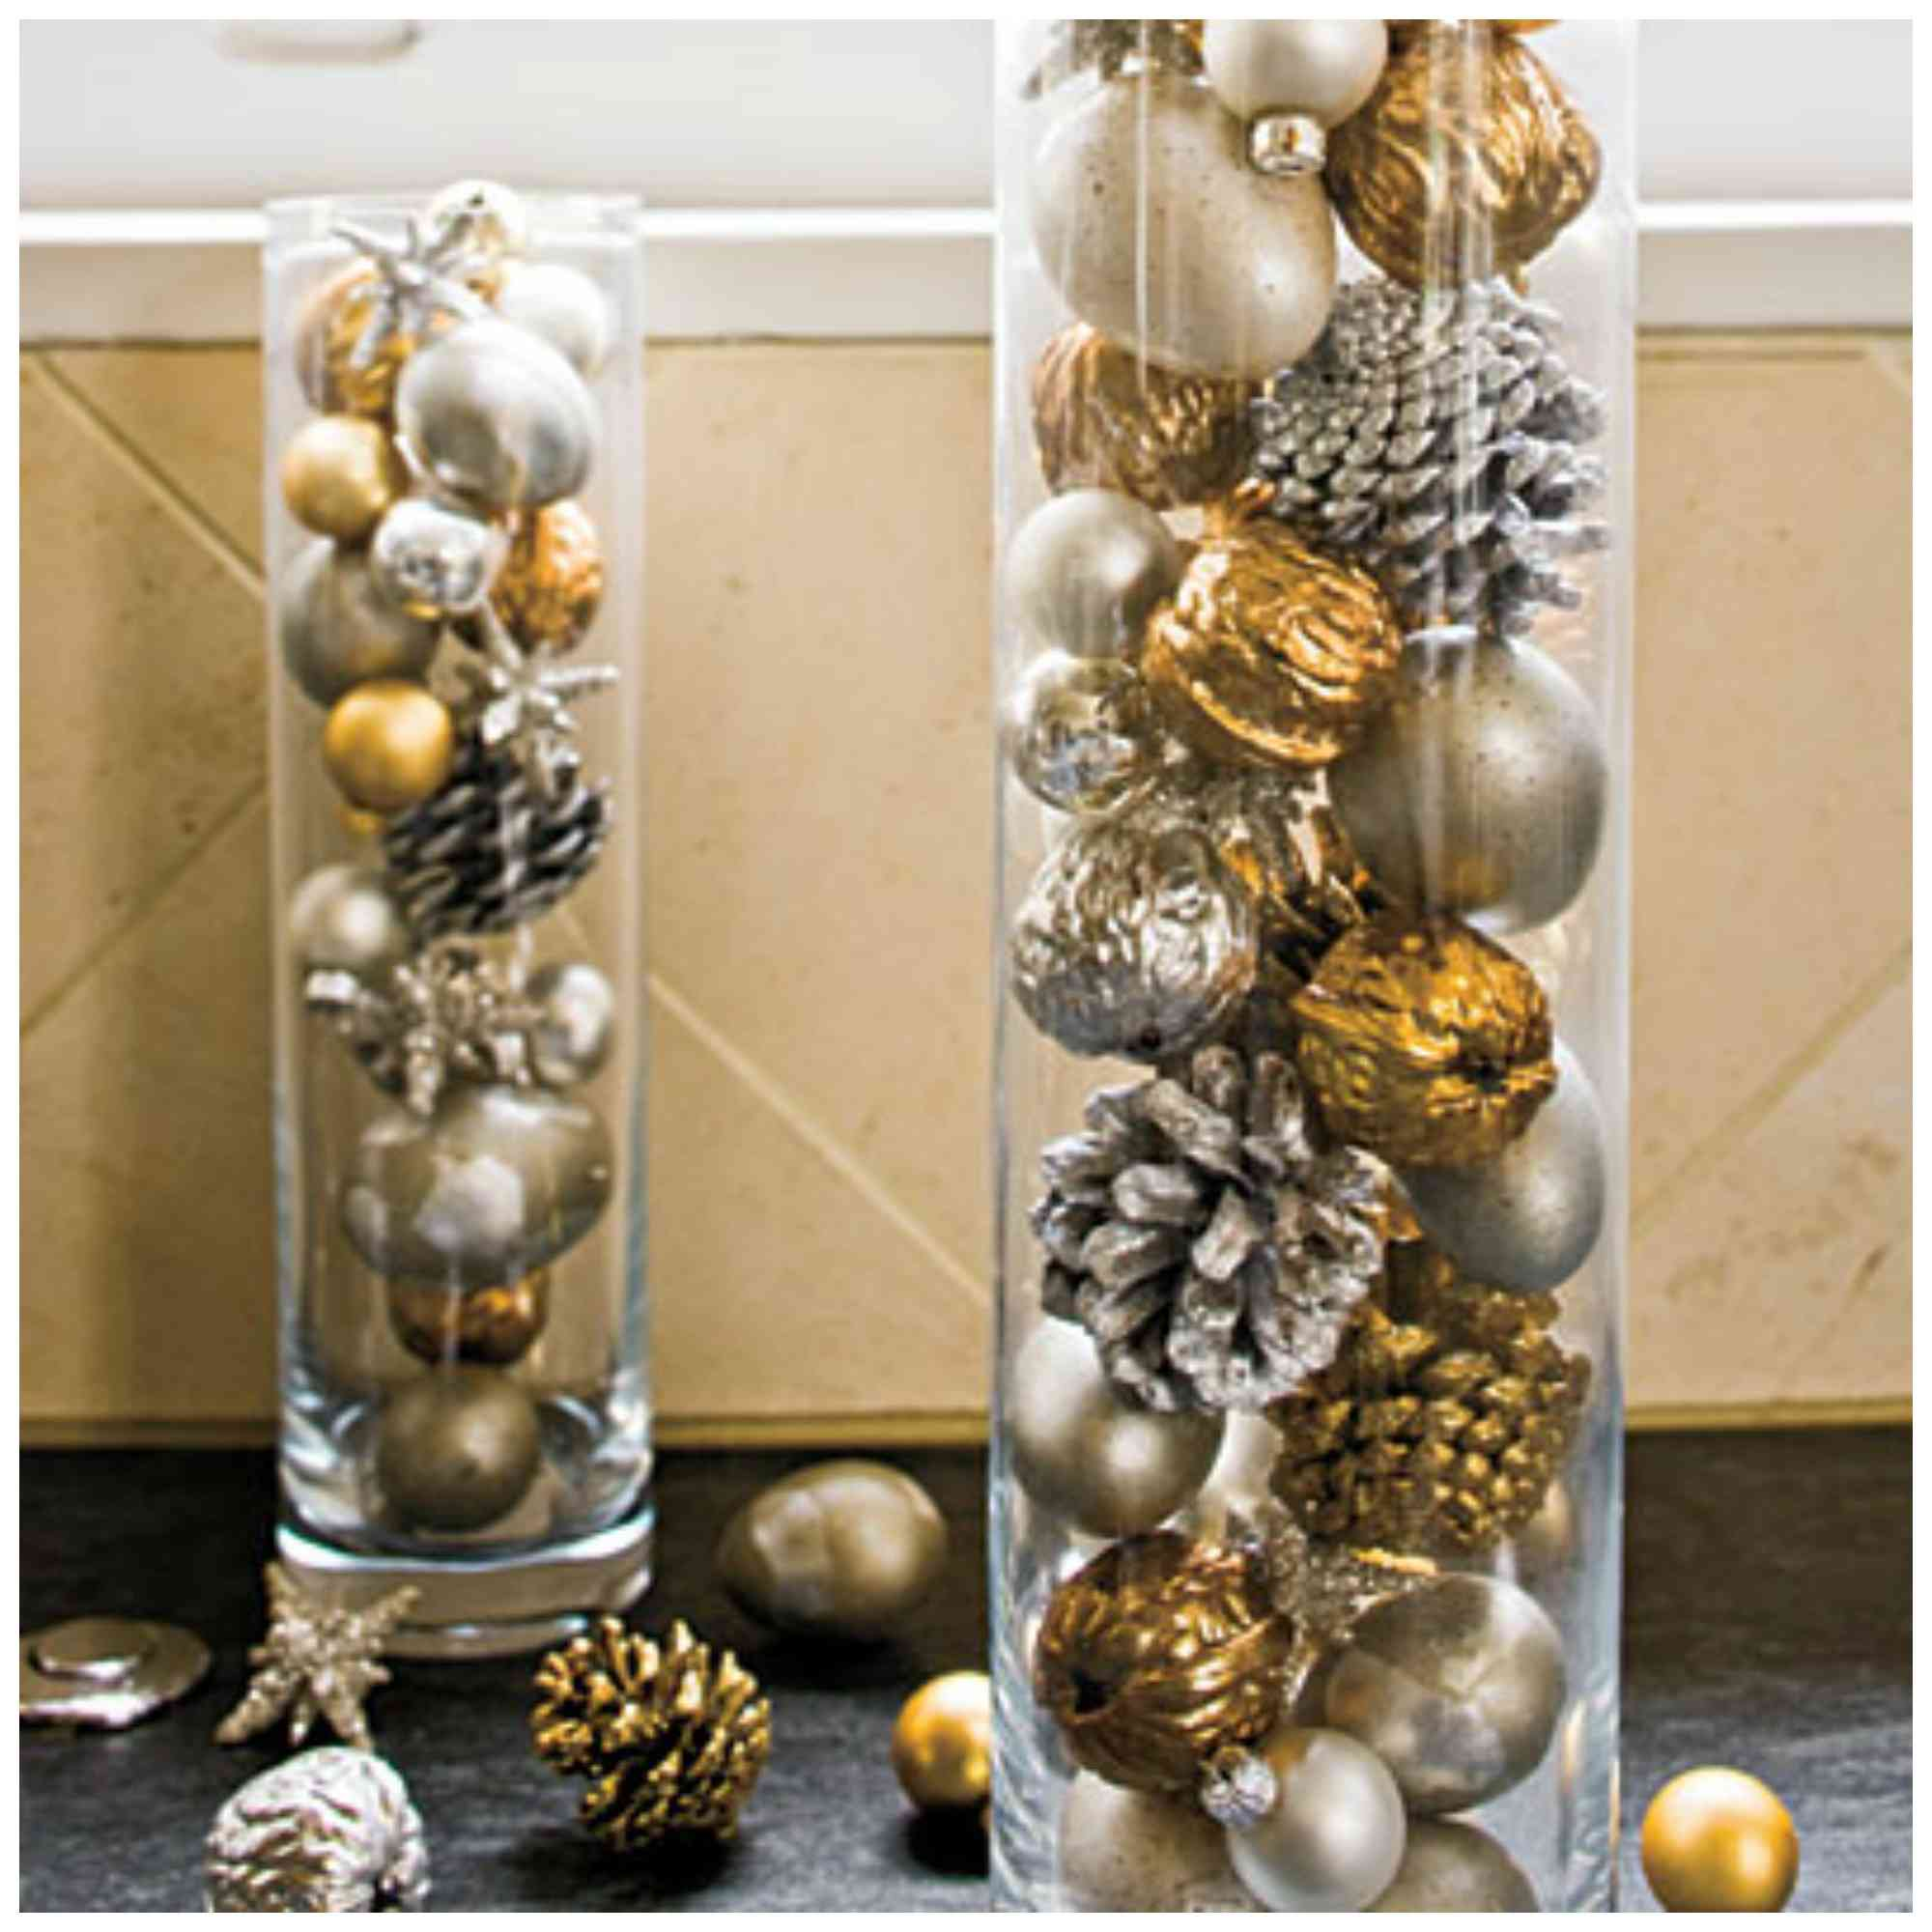 display ornaments in a vase